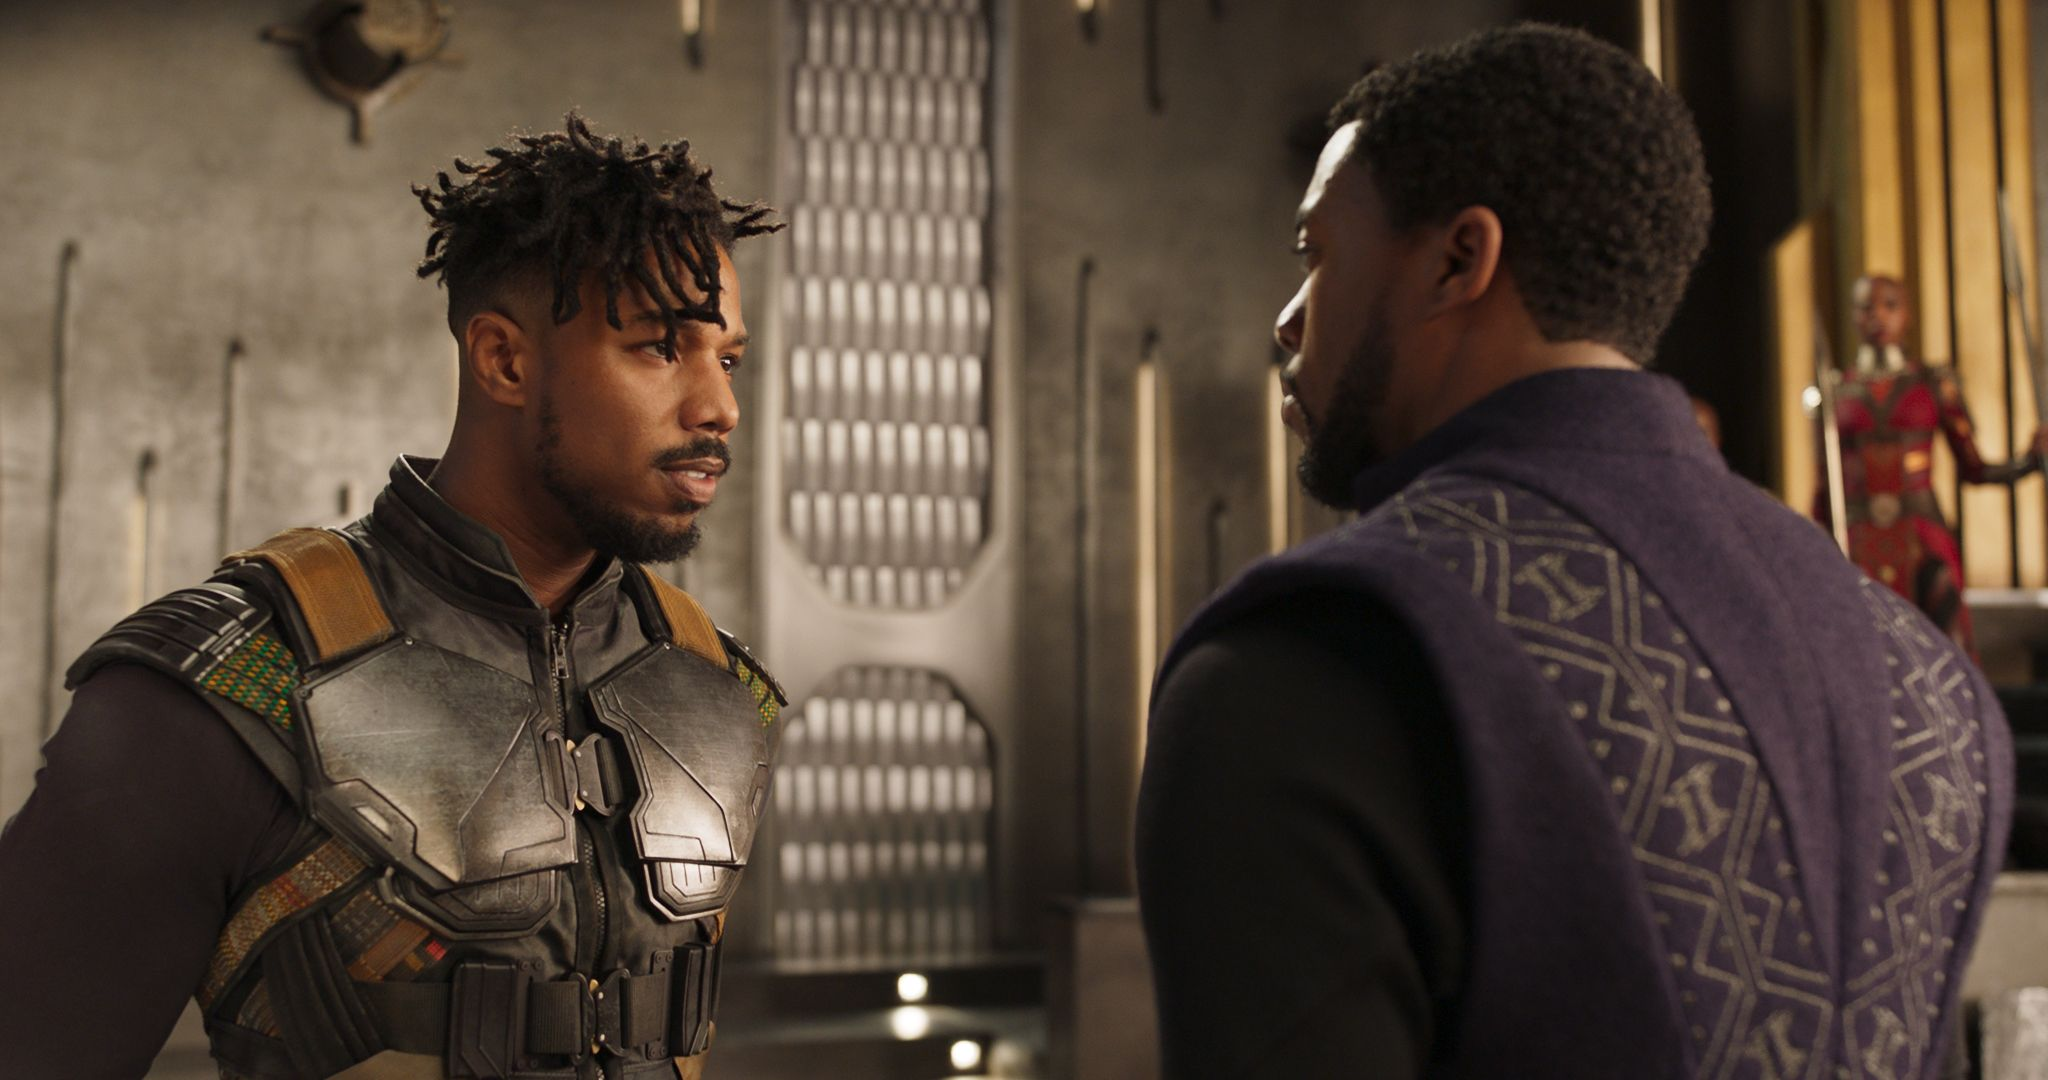 black panther michael b jordan chadwick boseman - Weekend Box Office: 'Black Panther' Continues Reign at # 1; 'Wrinkle in Time' Earns $33 Million